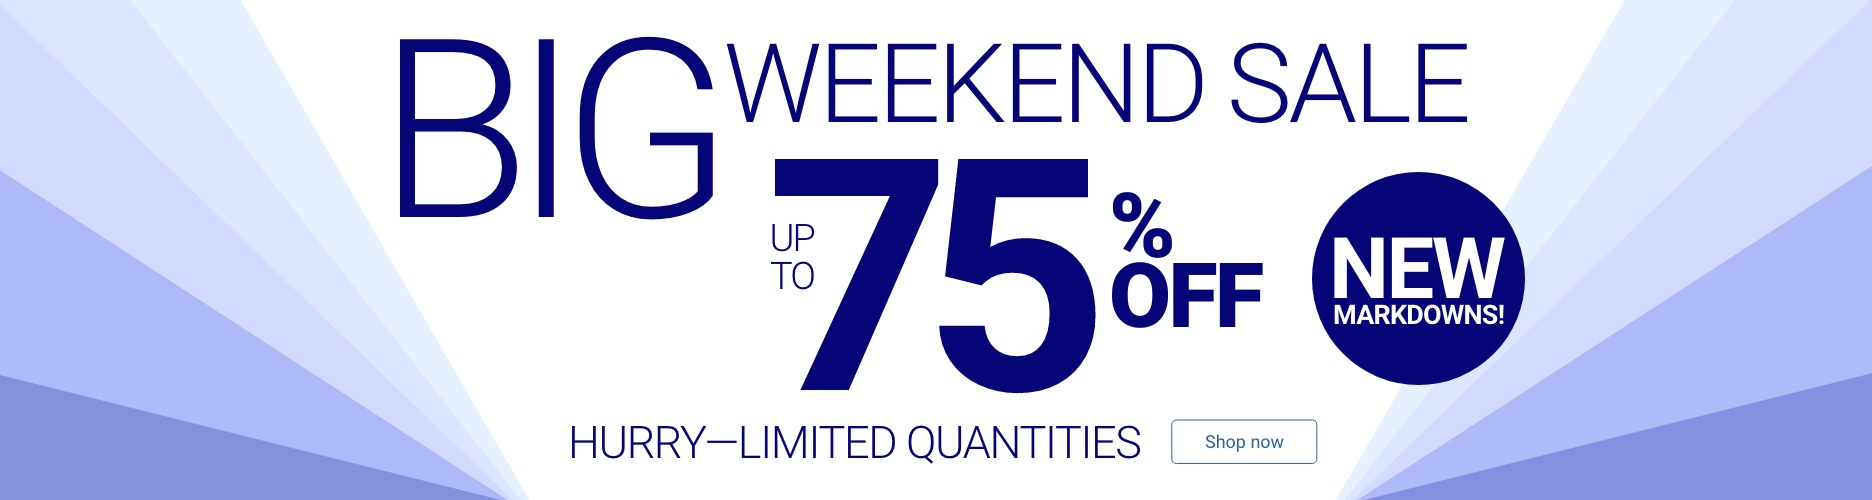 Big Weekend Sale Up To 75% Off Shop Now